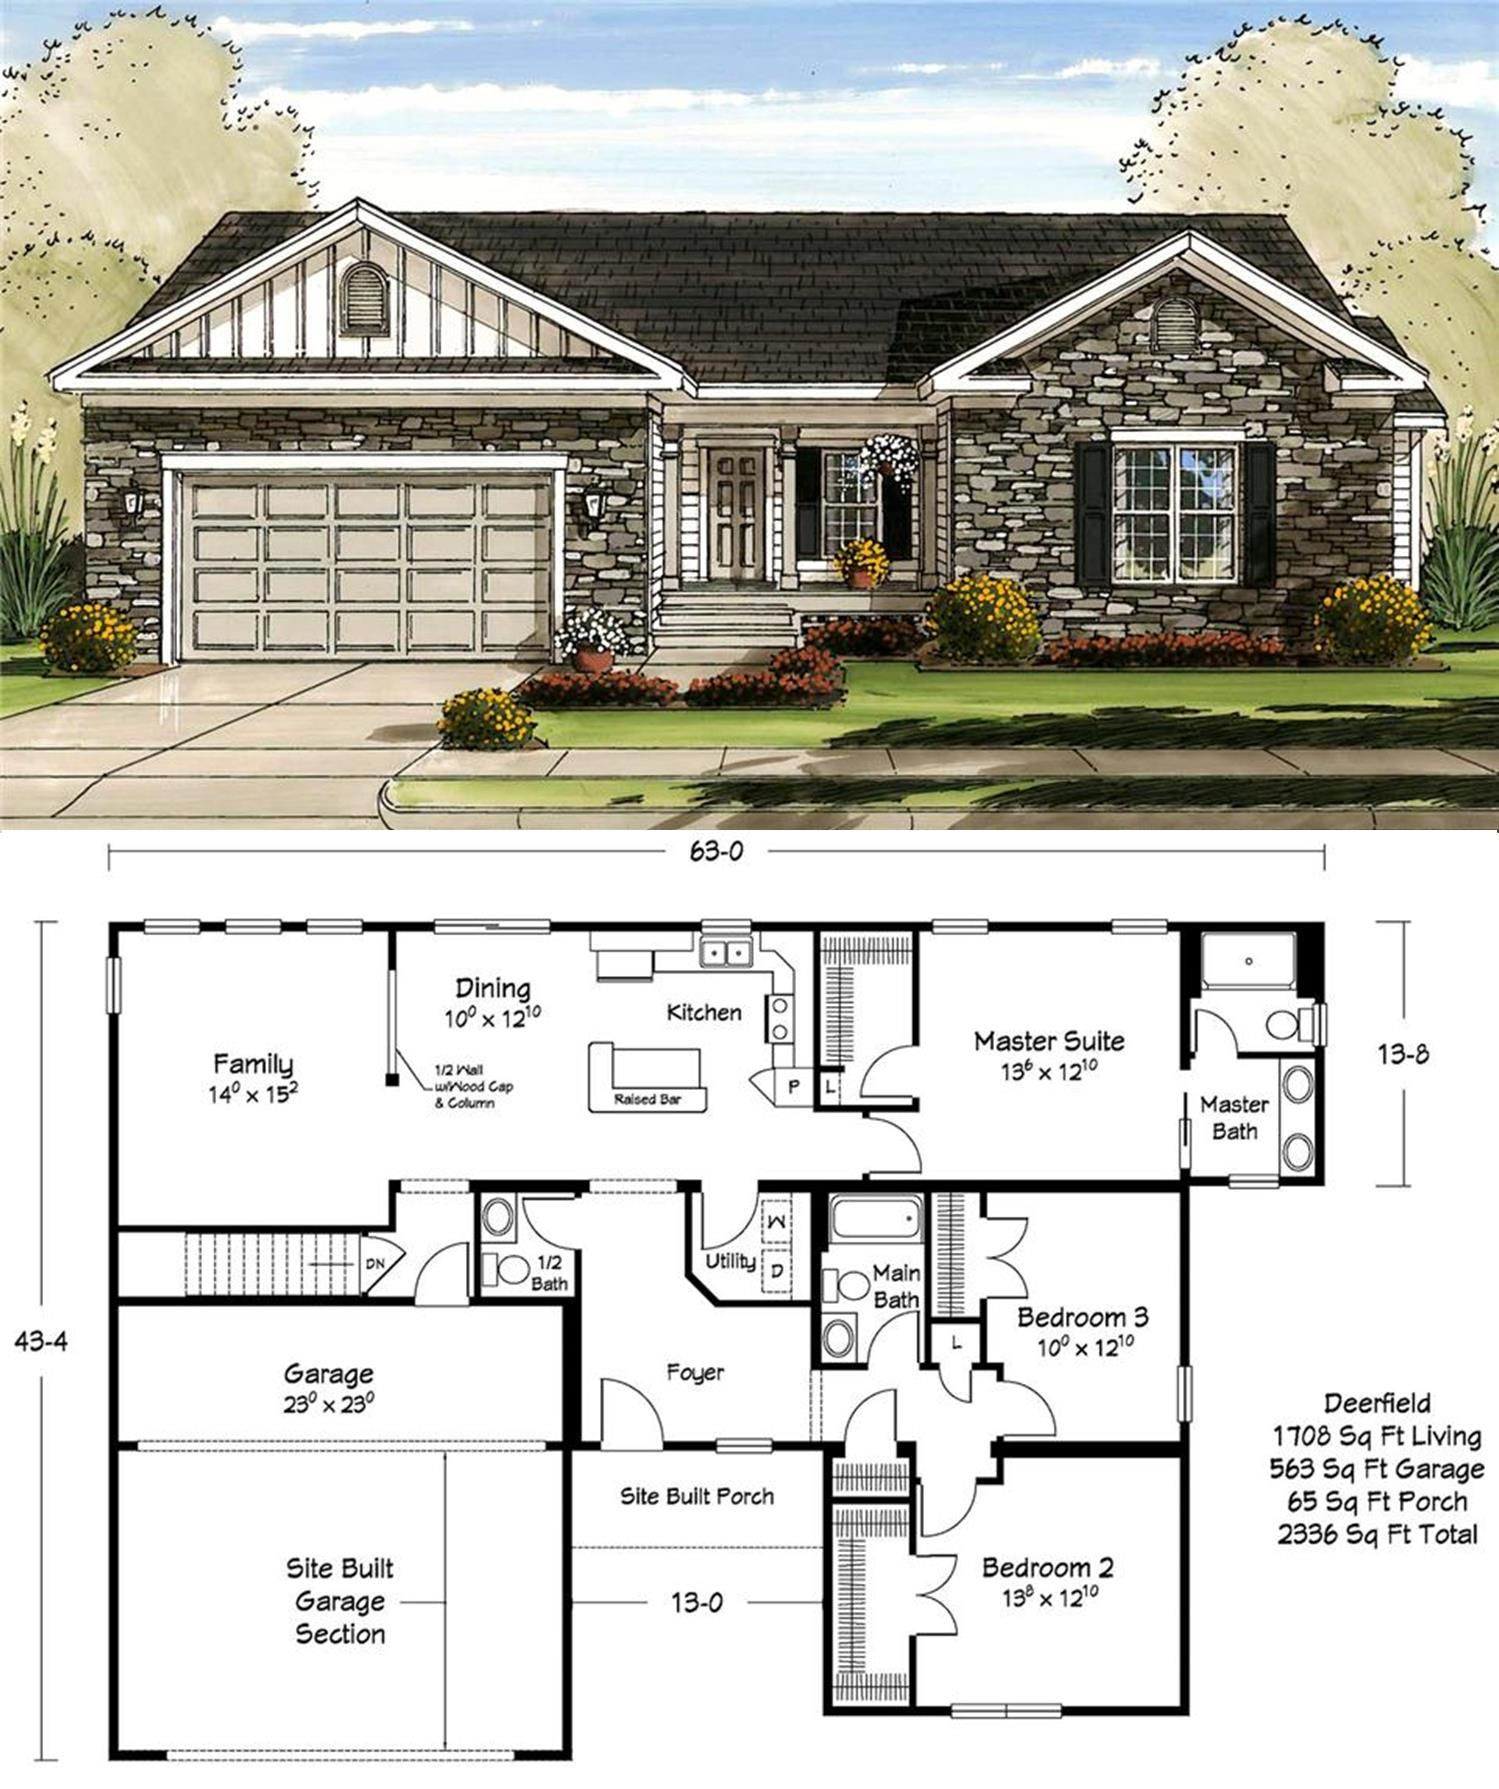 1700 Square Feet Perfect Realistic Simple Home Craftsman Style House Plans House Plans With Pictures New House Plans